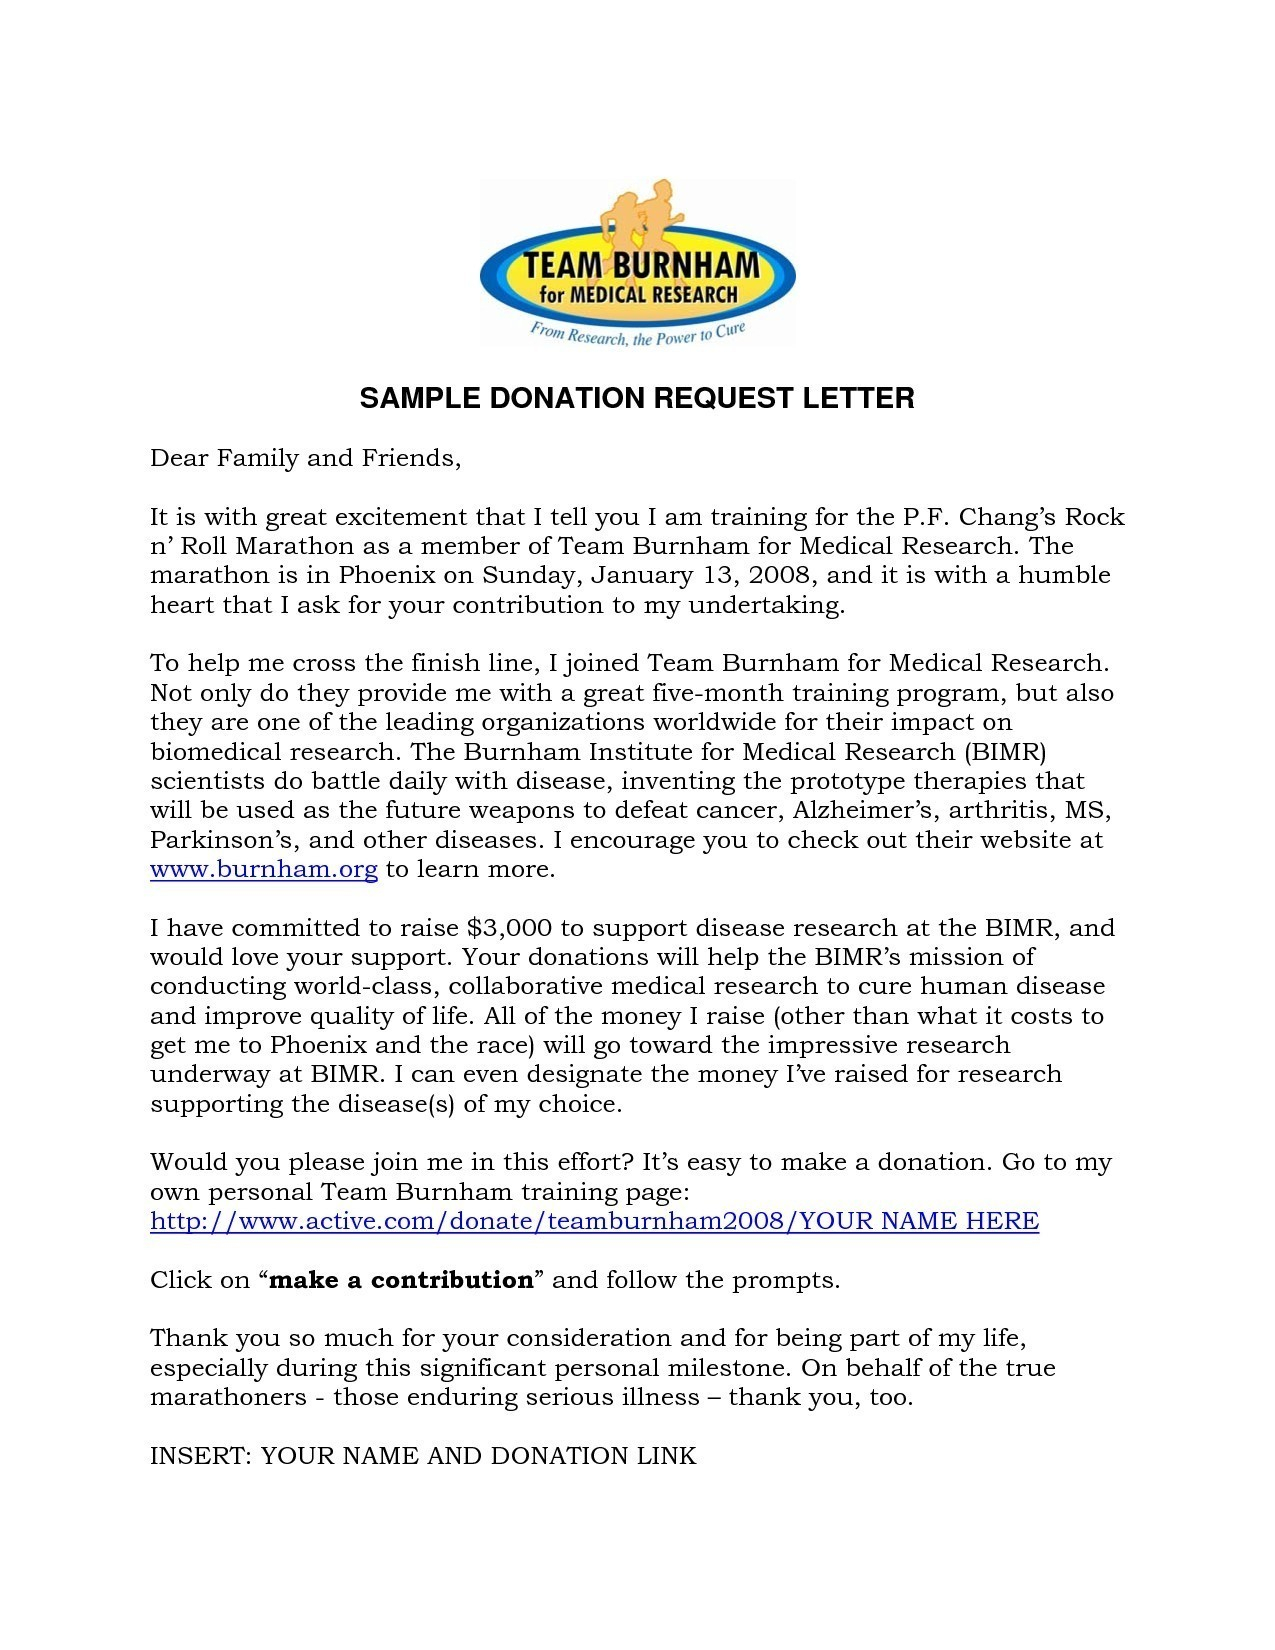 Donation Request Letter Template - Samples Letters Request Donation New Sample Letters for Request for